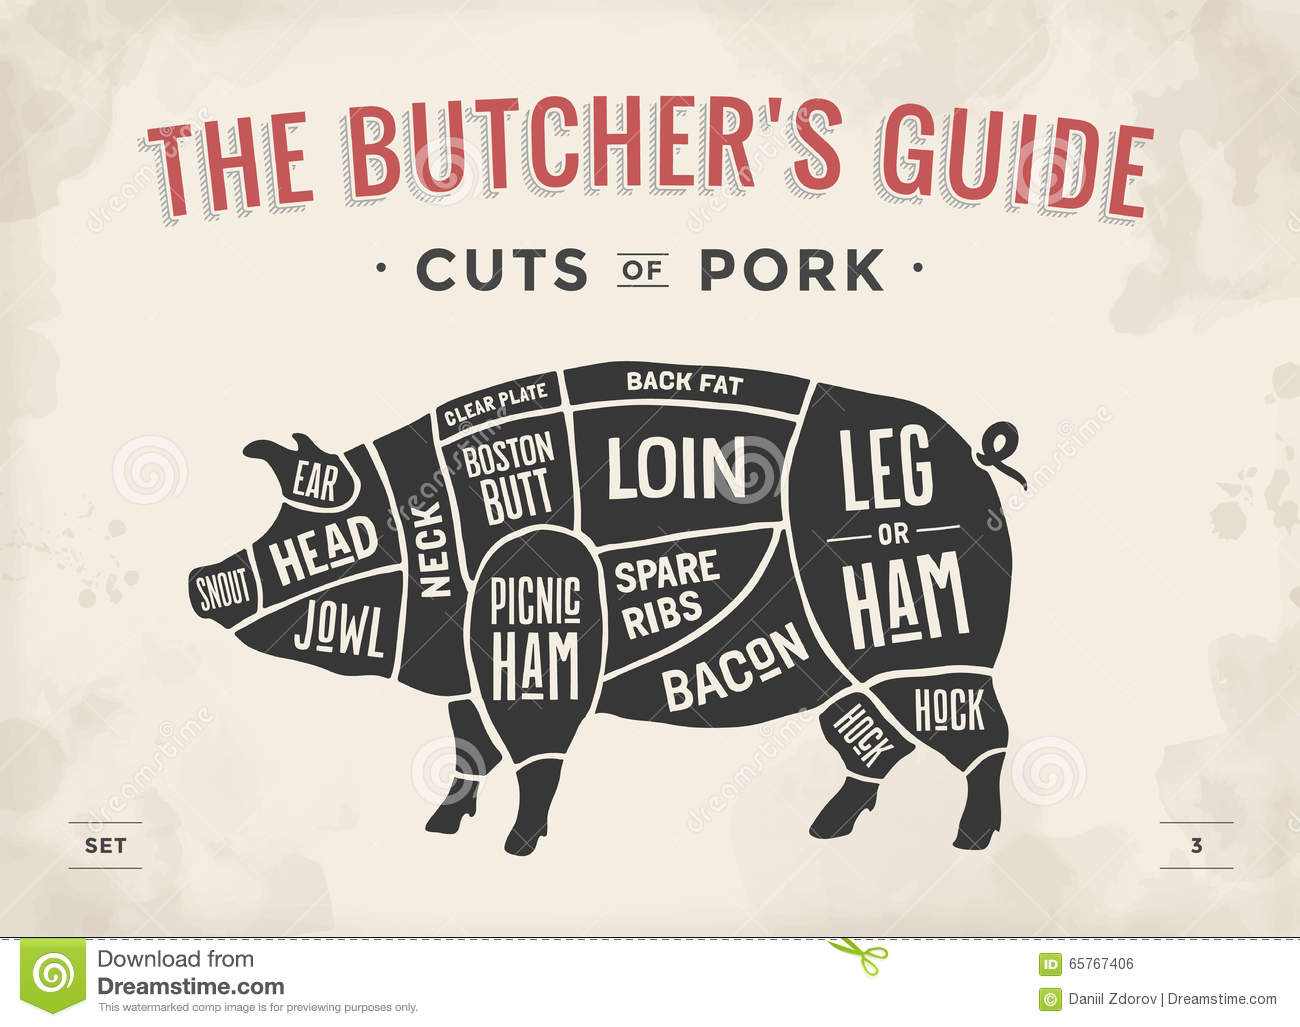 beef cuts diagram of cow signal stat 900 6 wire wiring cut meat set. poster butcher diagram, scheme and guide - pork. vintage typographic hand-drawn ...